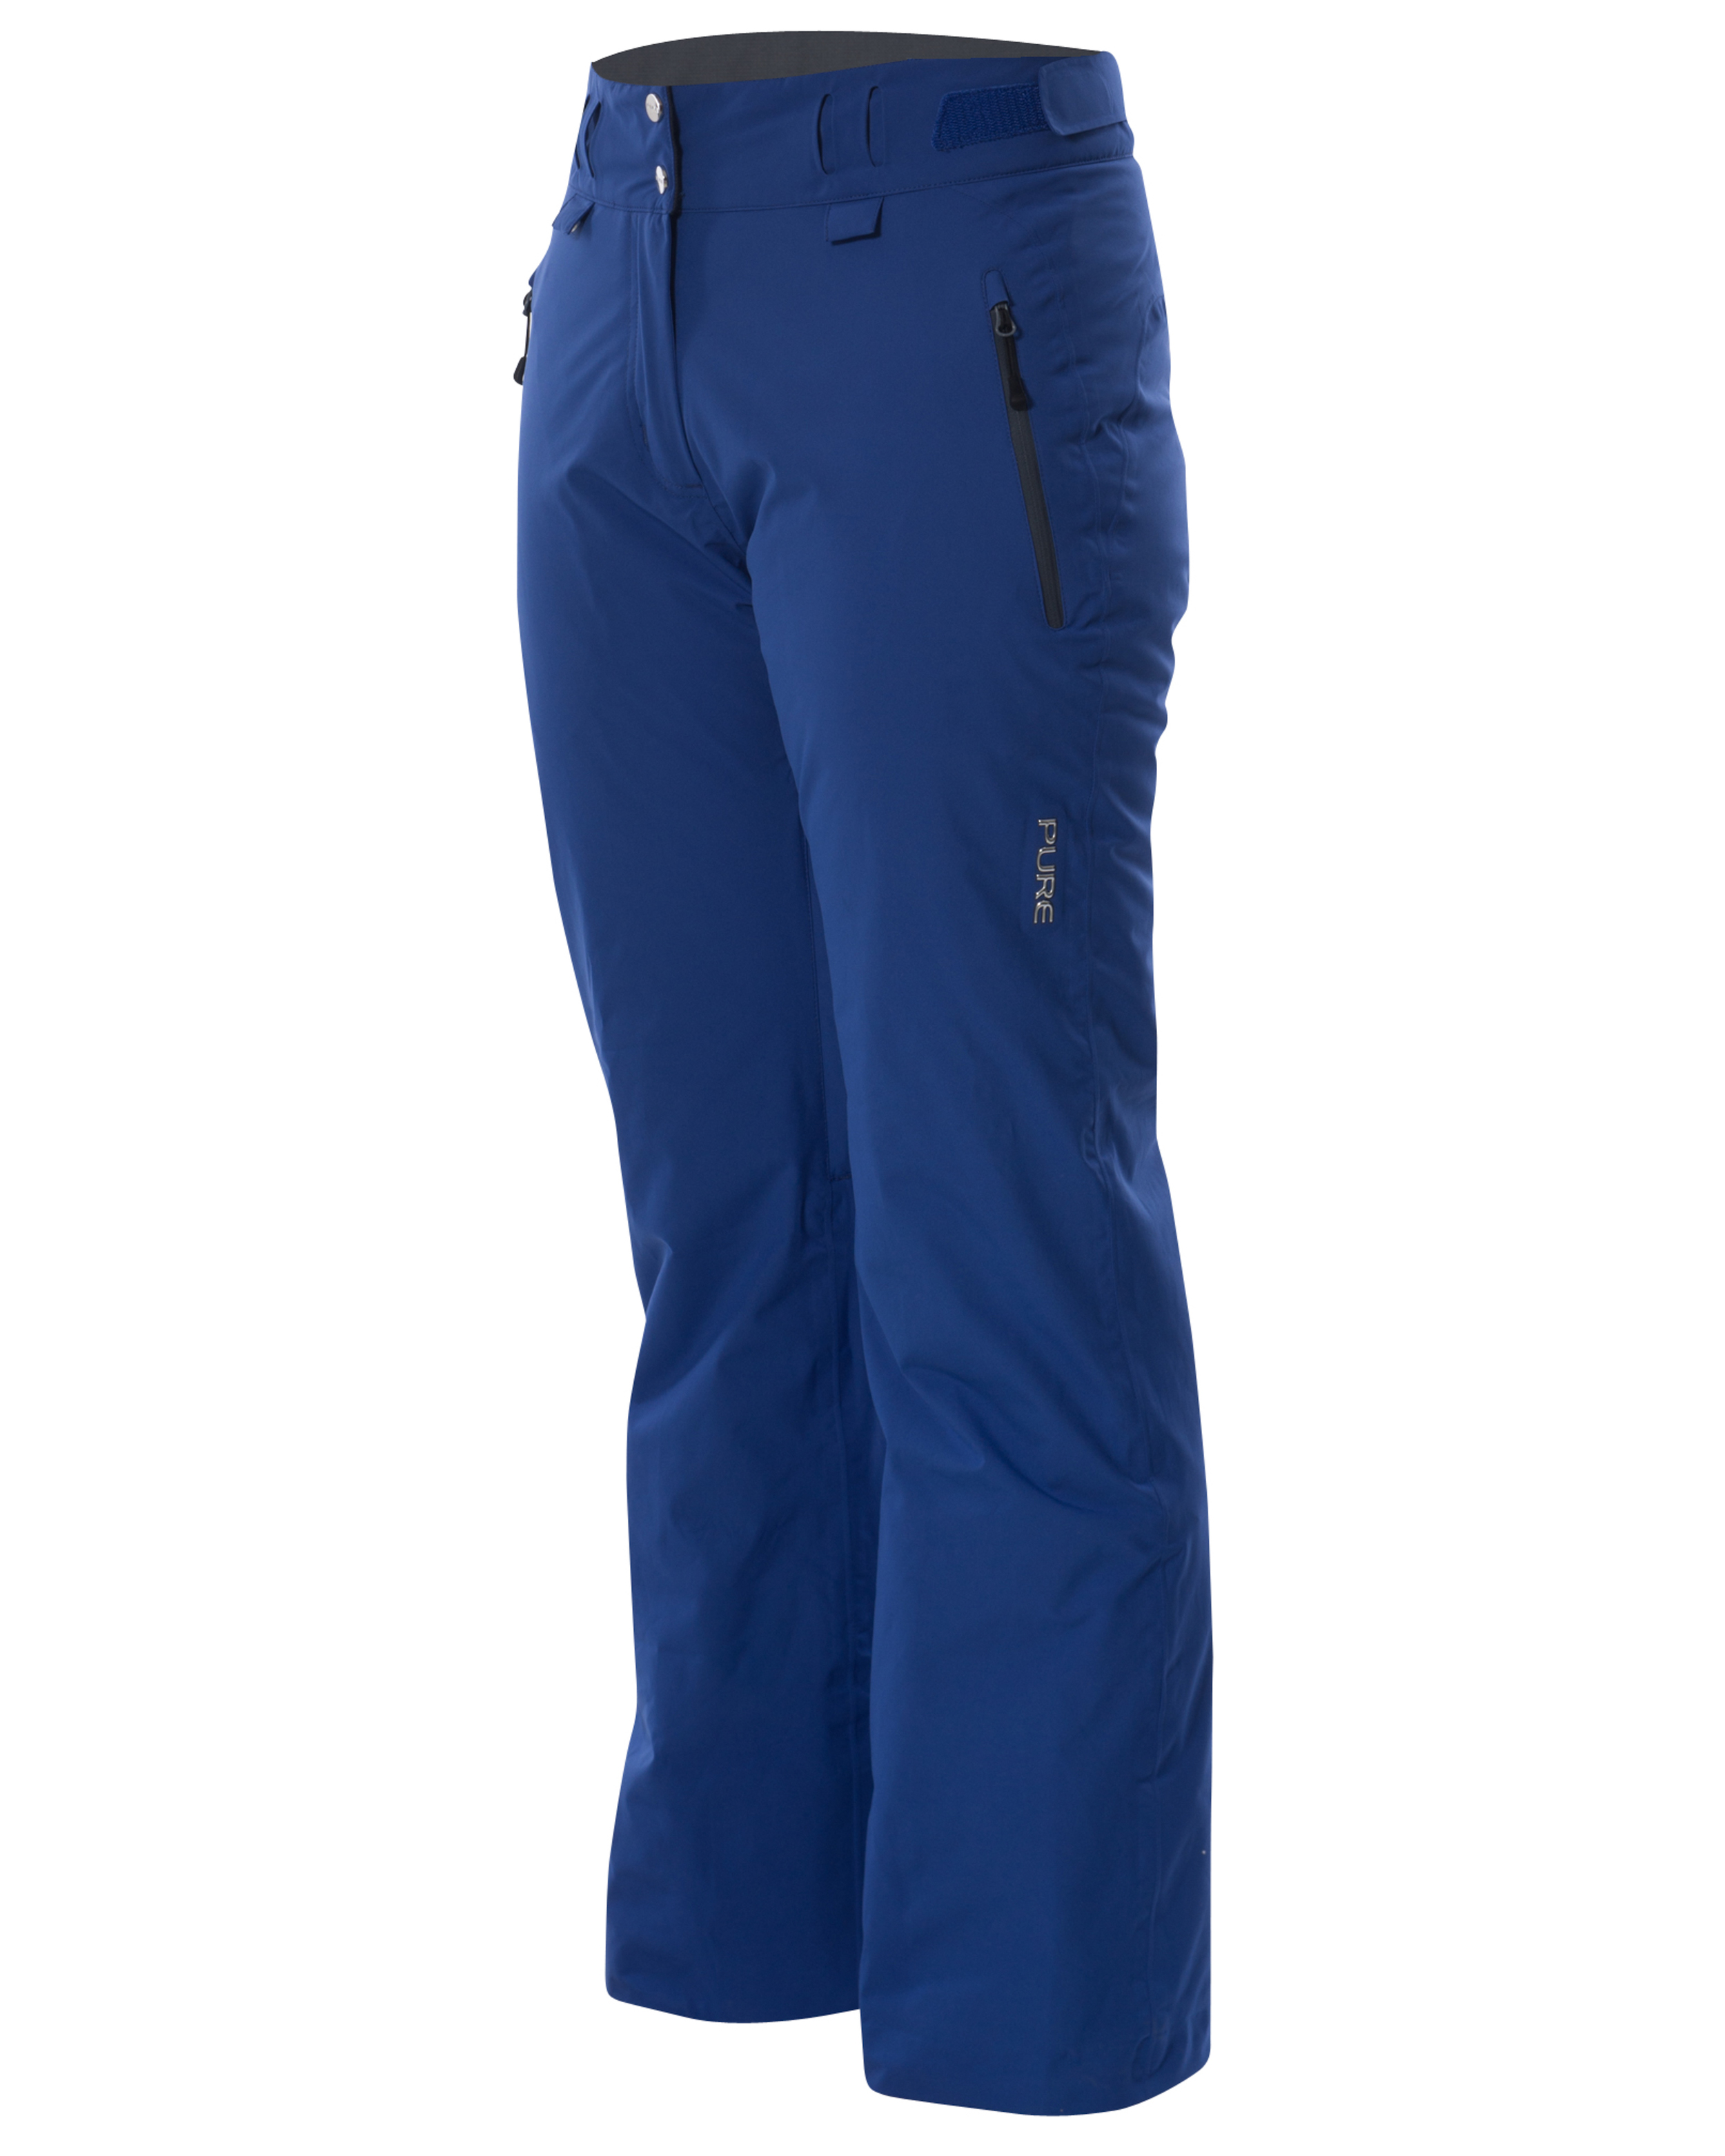 Remarkables Women's Pure Snow - Surf